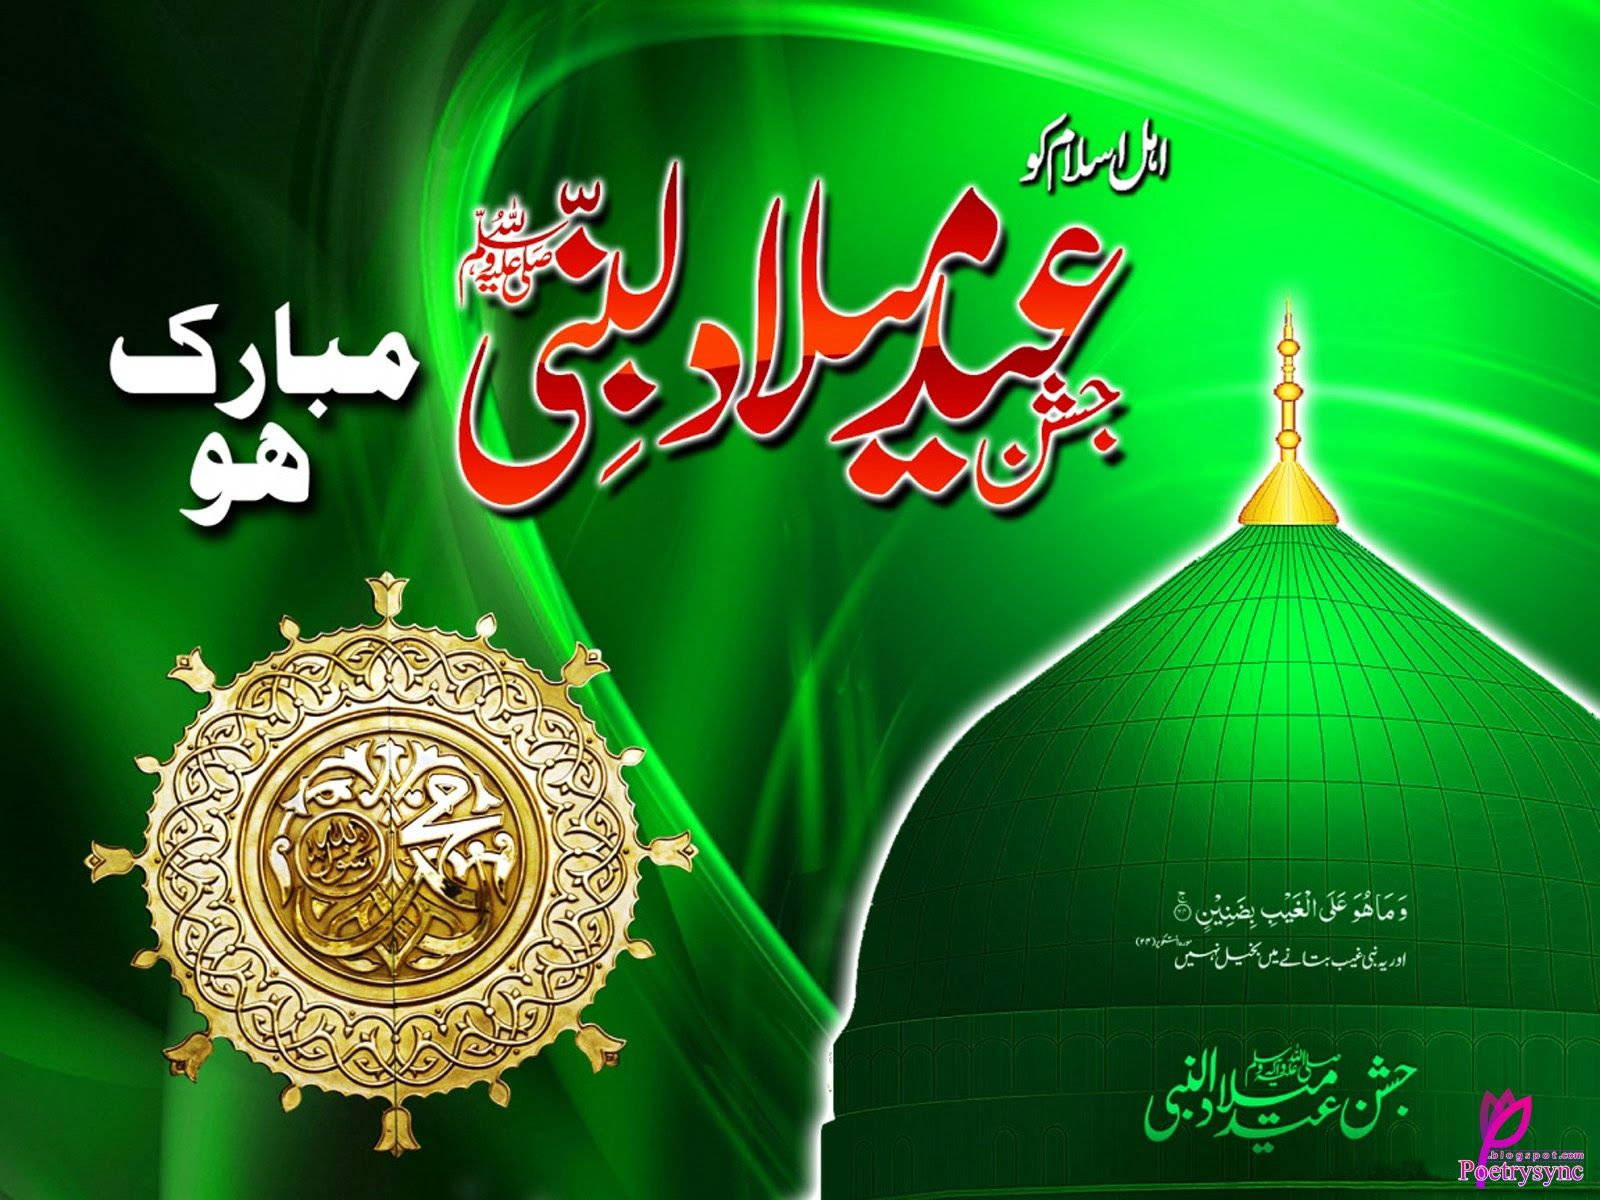 Jashn e eid milad un nabi greetings card picture with quote eid jashn e eid milad un nabi greetings card picture with quote rabi m4hsunfo